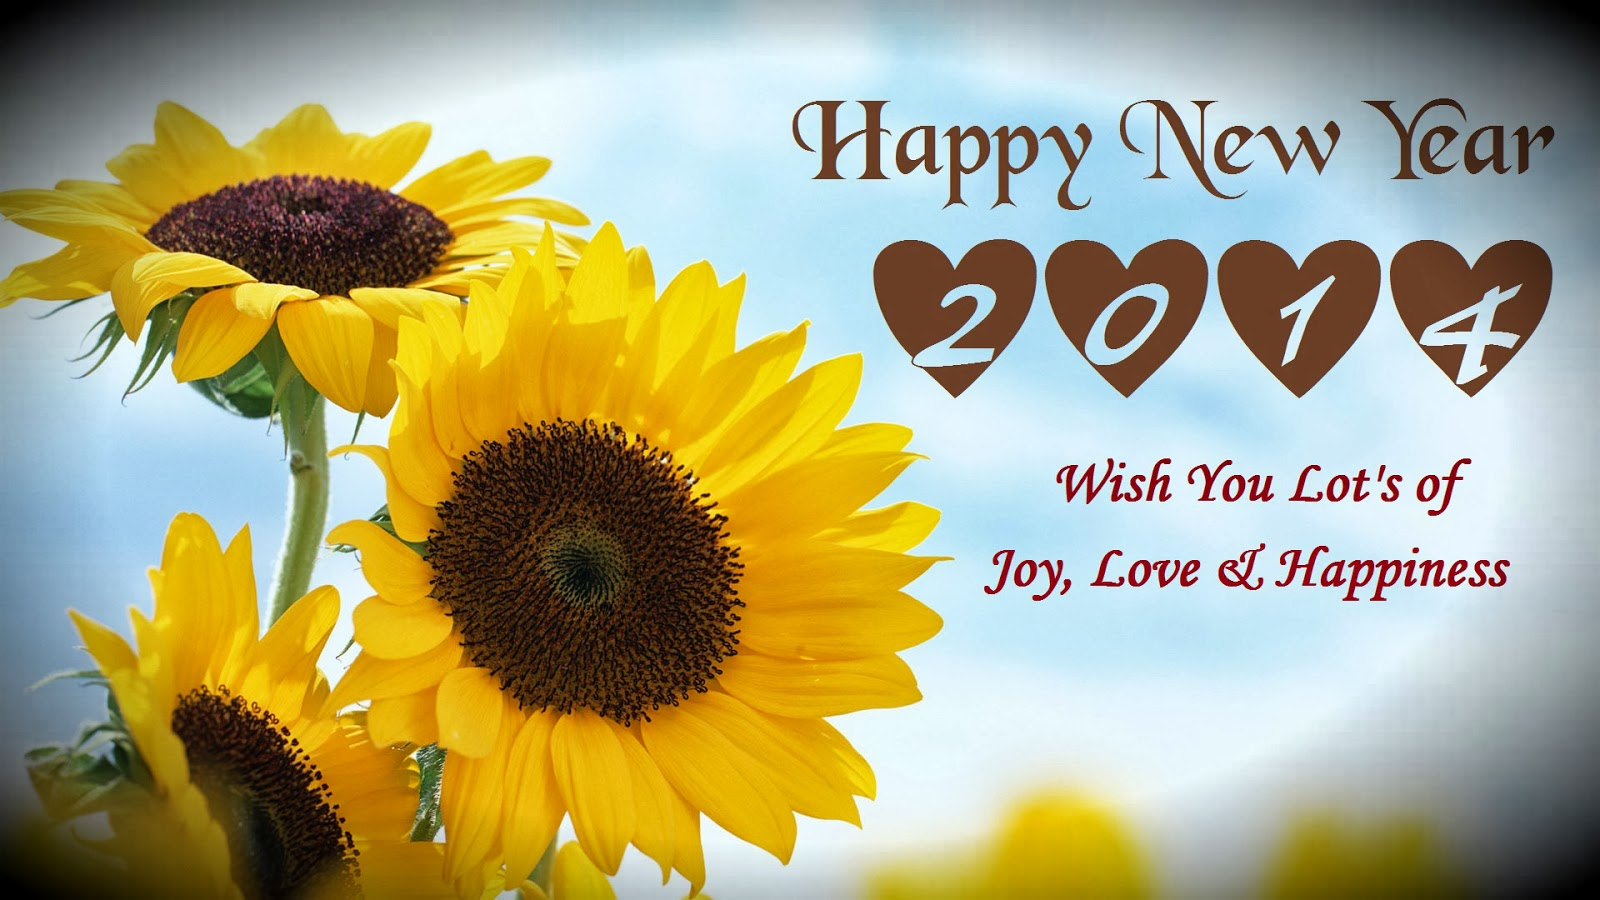 Previous Card Next Card. 1600 x 900.Send New Years Greetings Text